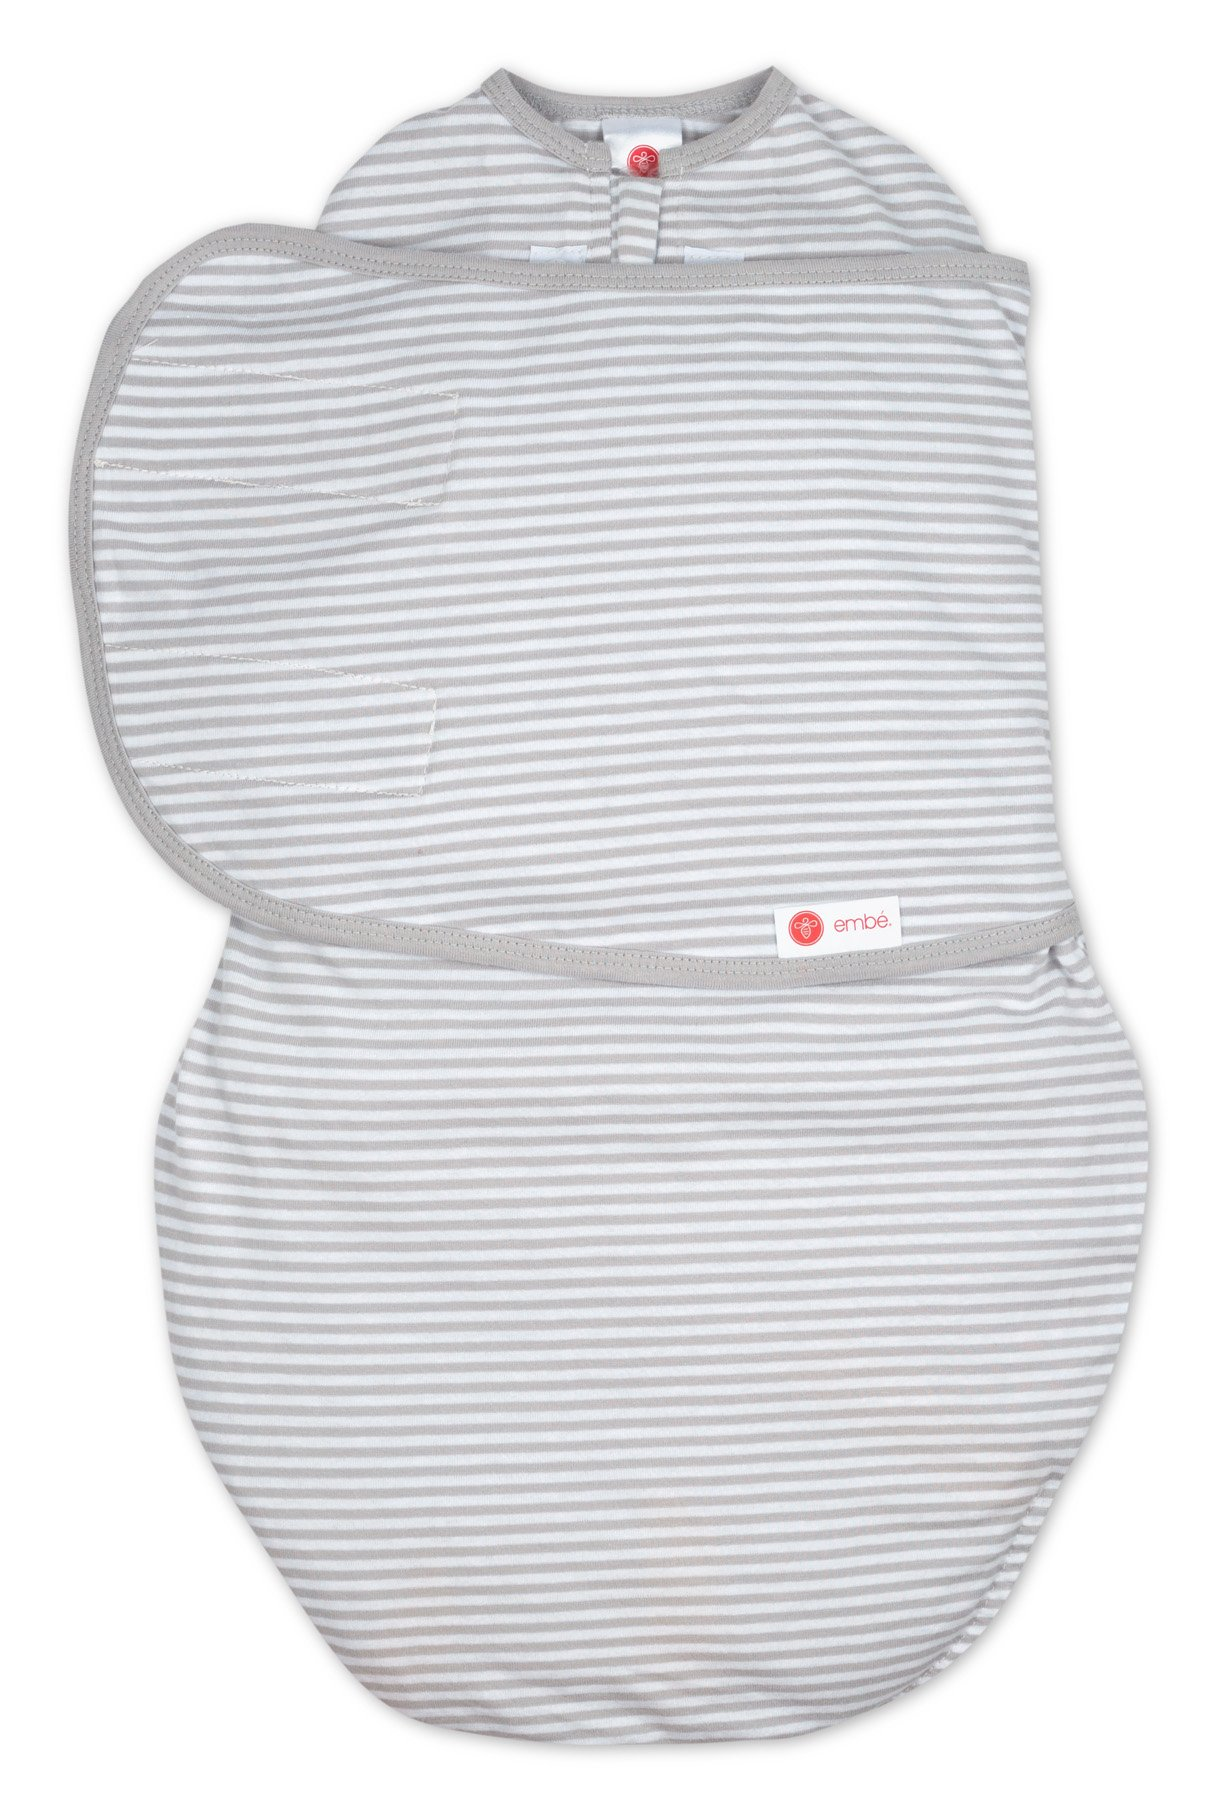 embé 2-Way Starter Swaddle Blanket, 5-14 lbs, Diaper Change w/o Unswaddling, Legs in and Out Design, Warm Up or Cool Down 100% Cotton, 0-3 Months (Grey Stripe) by embe